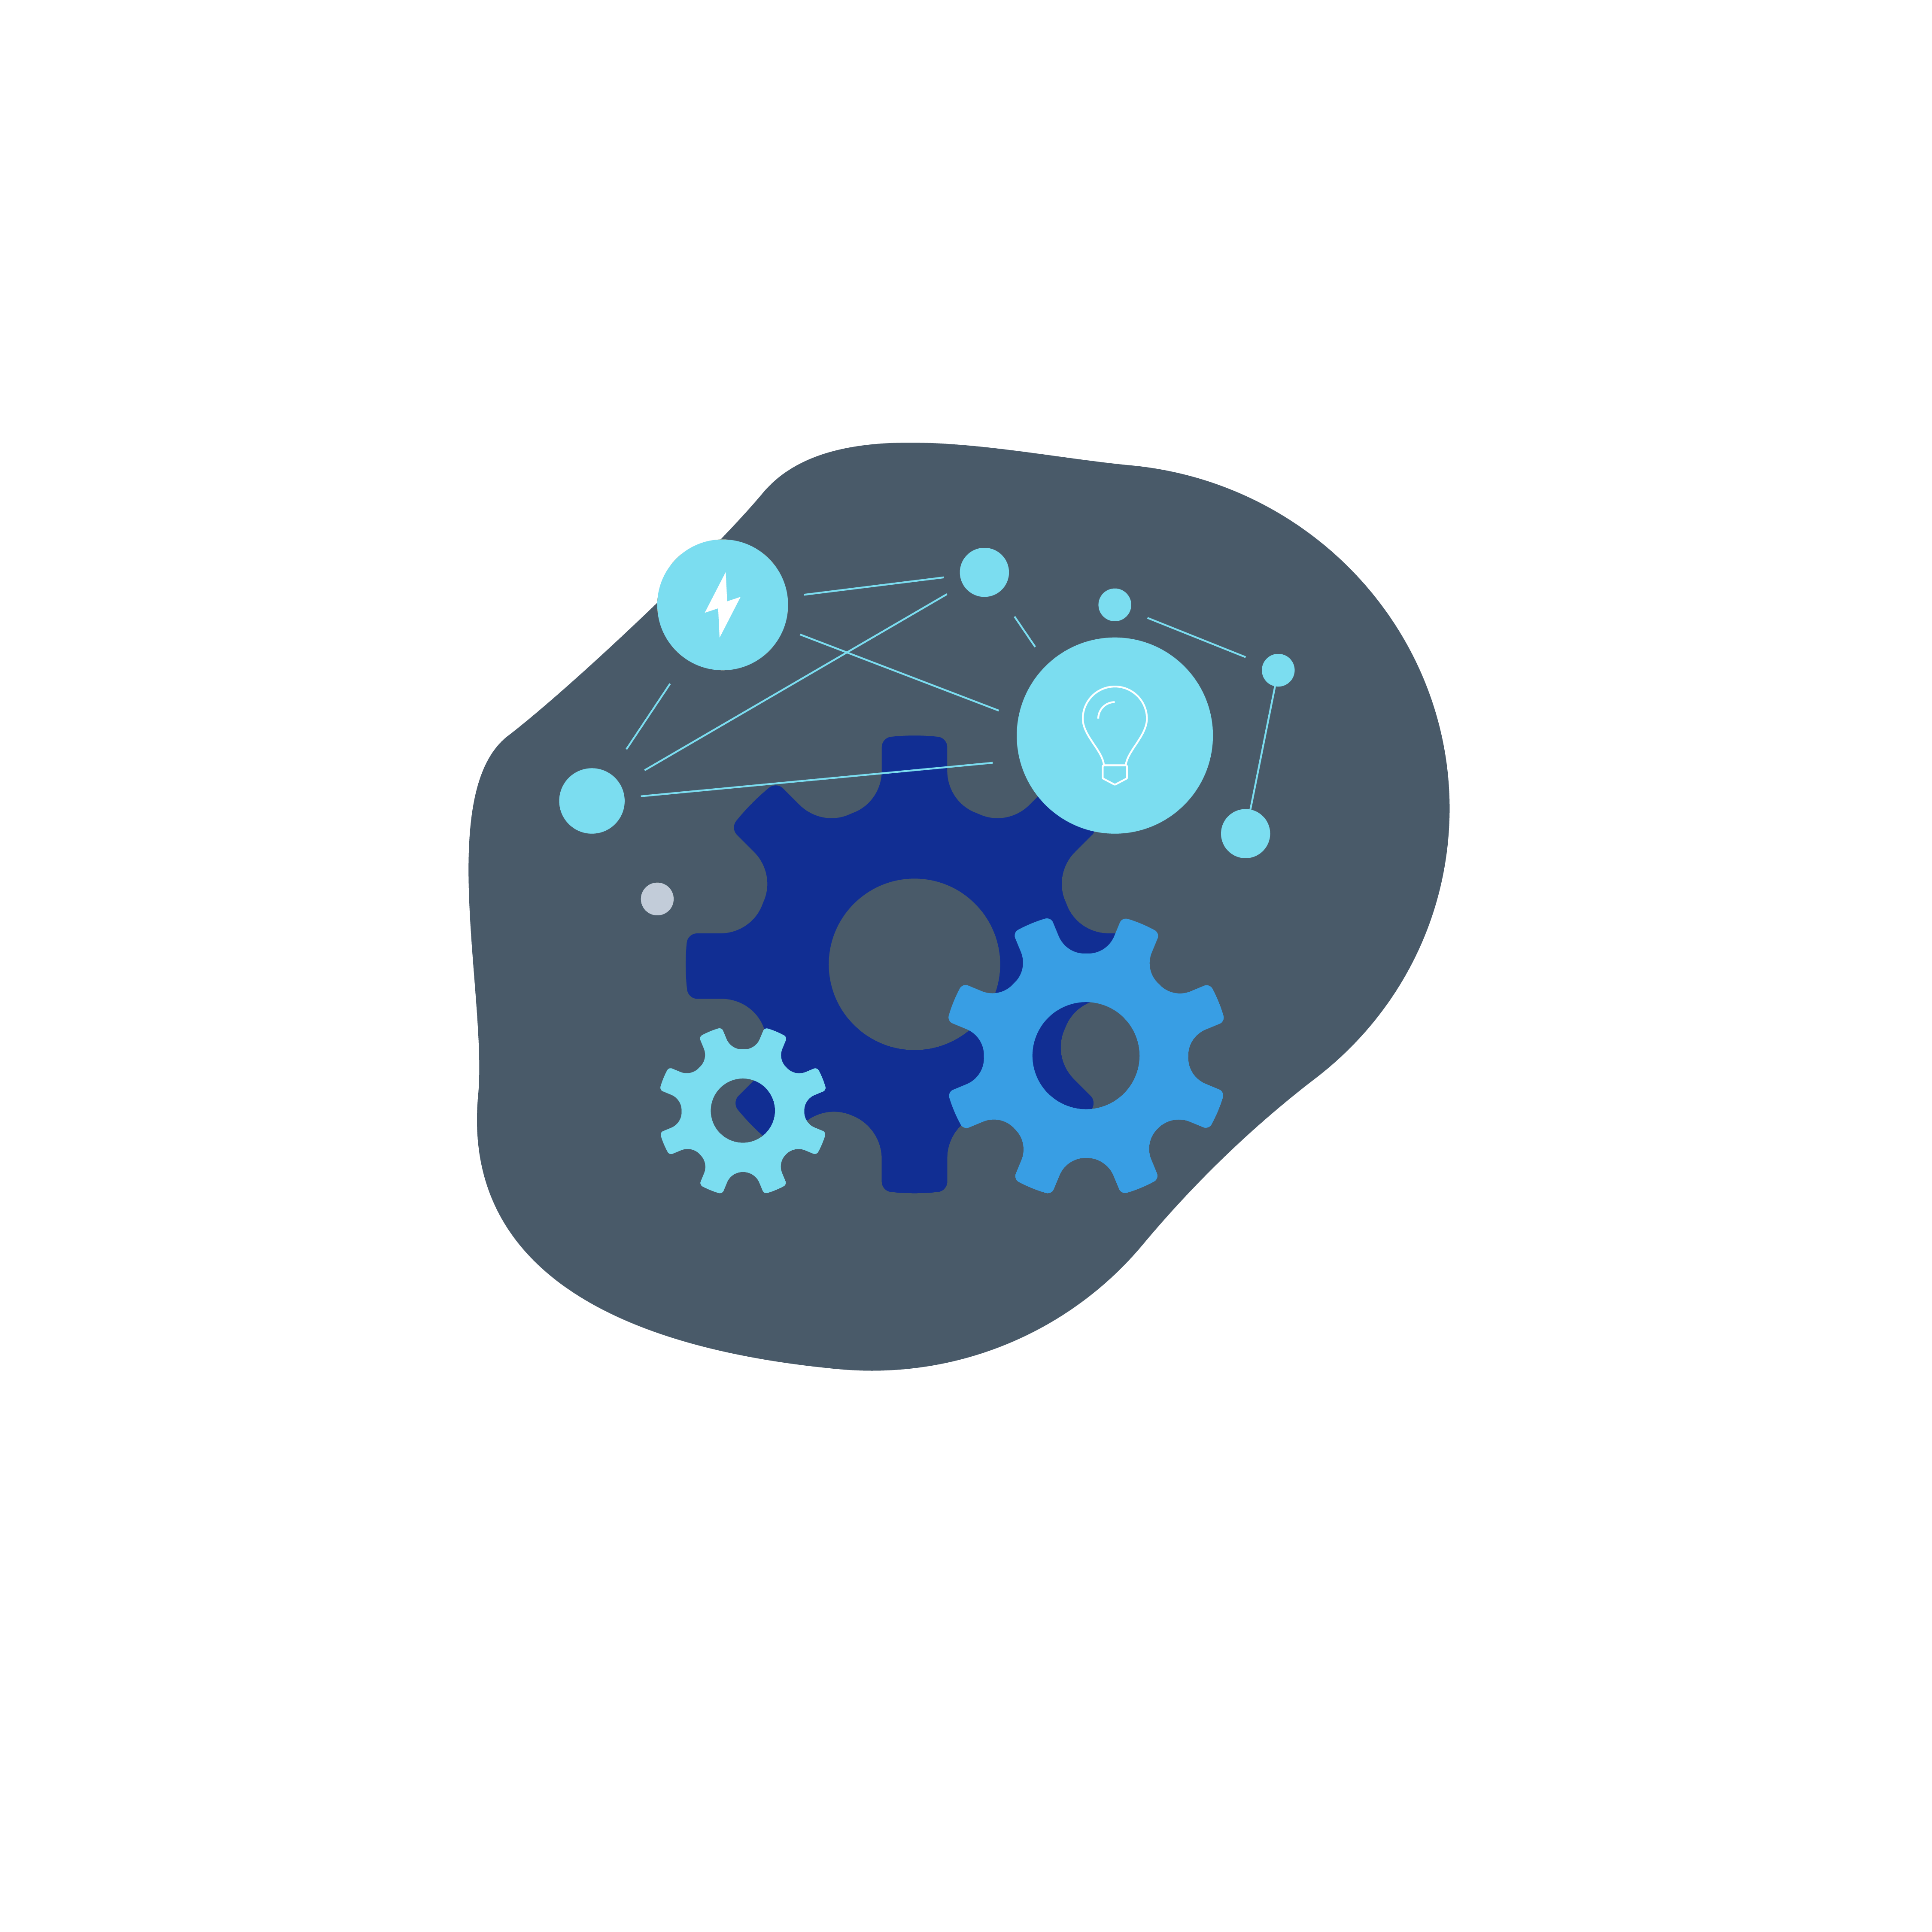 Systems integrations